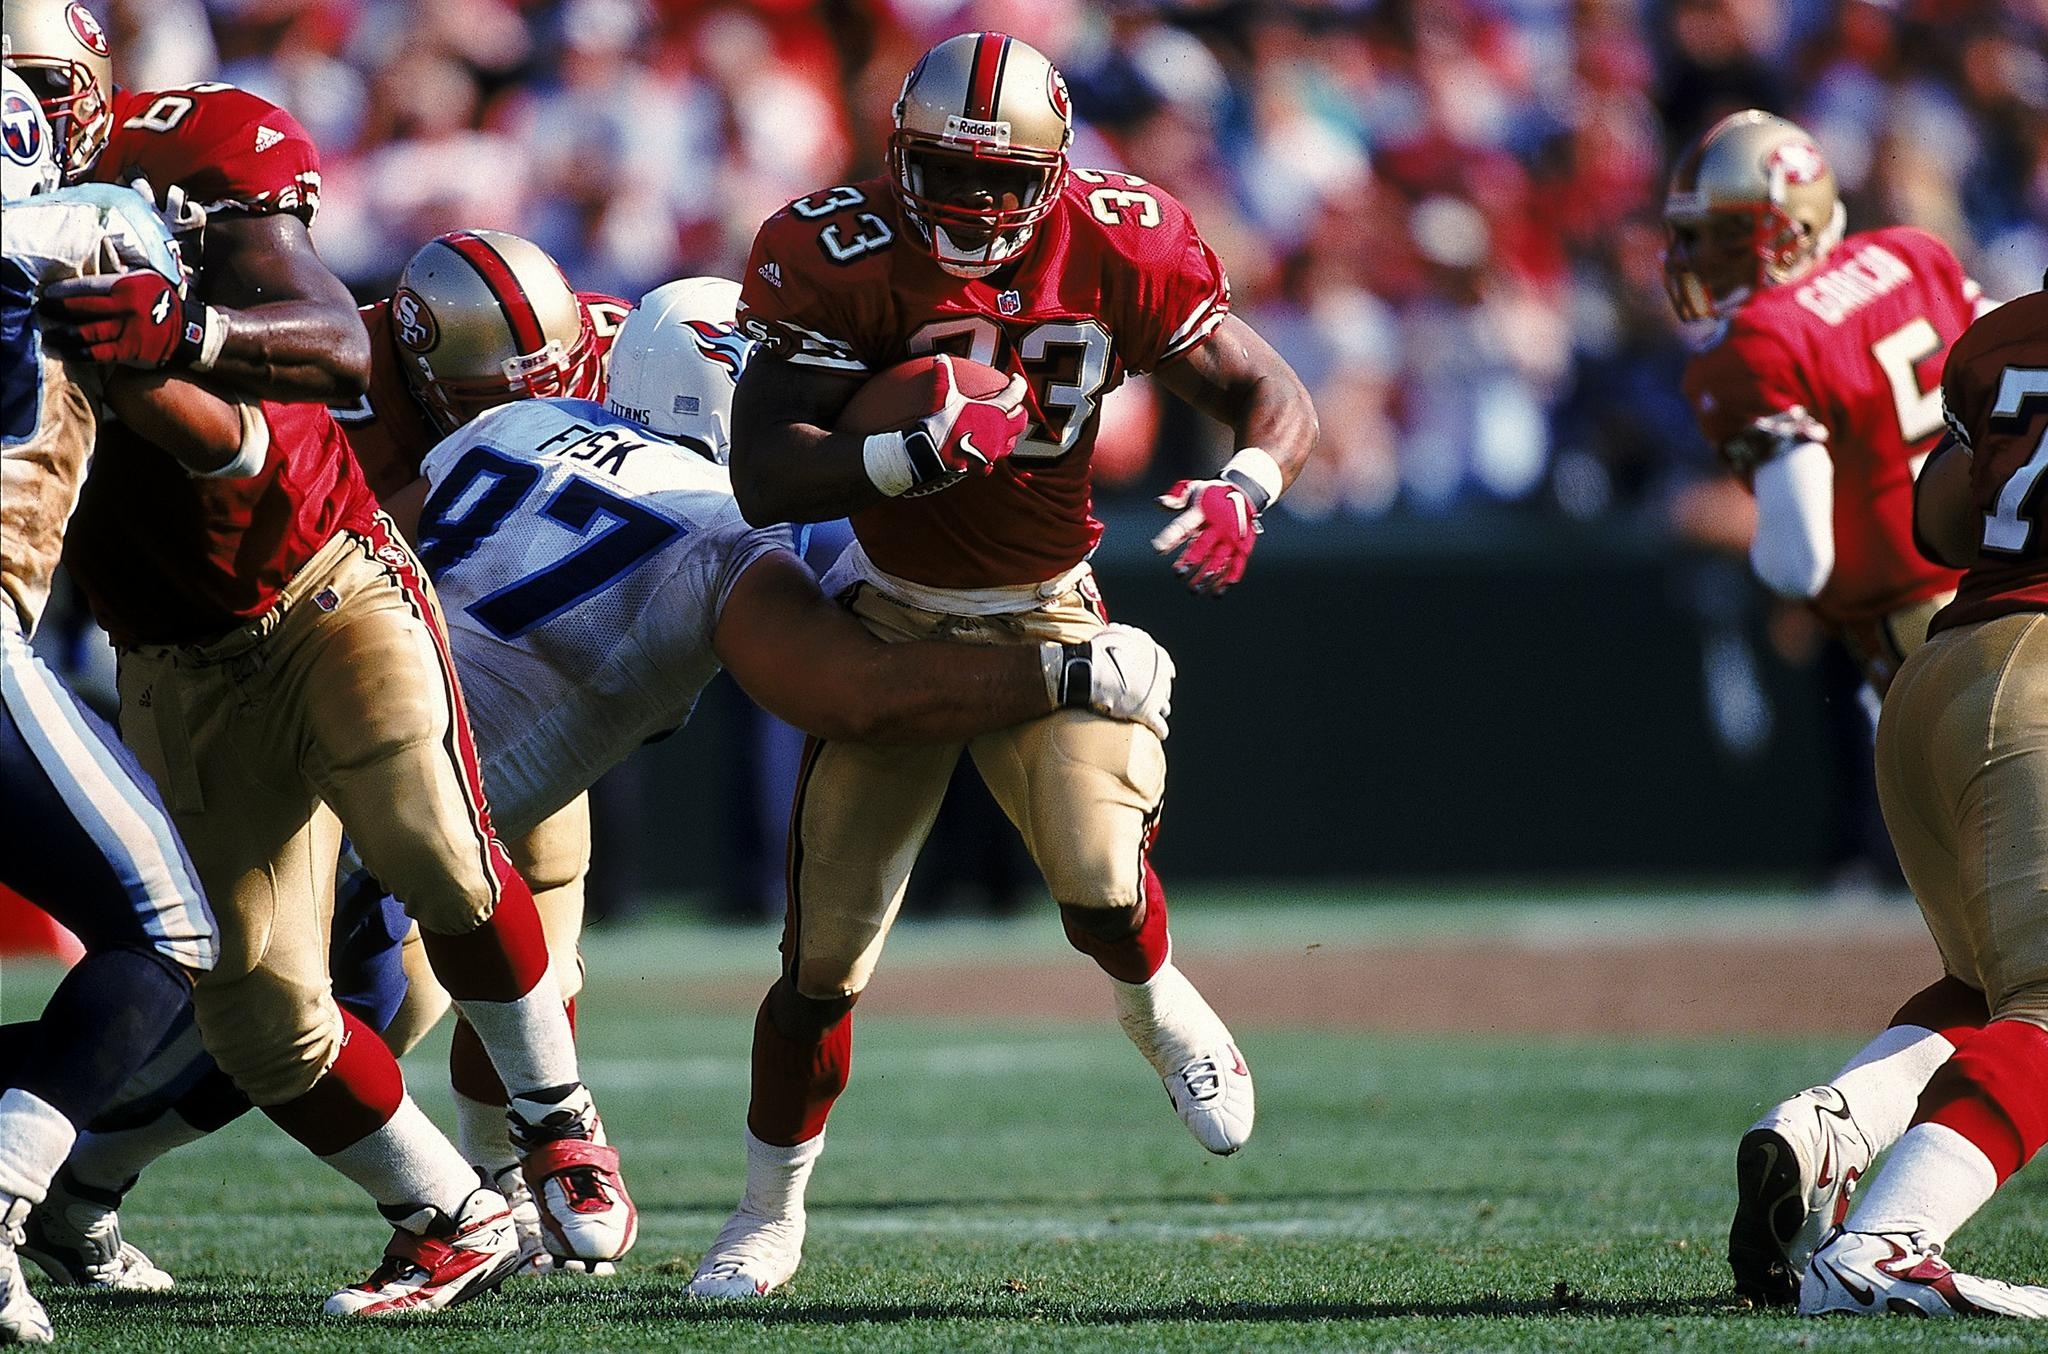 Lawrence Phillips of the San Francisco 49ers carries the ball during a game against the Tennessee Titans at 3Com Park in San Francisco, California on October 3, 1999.